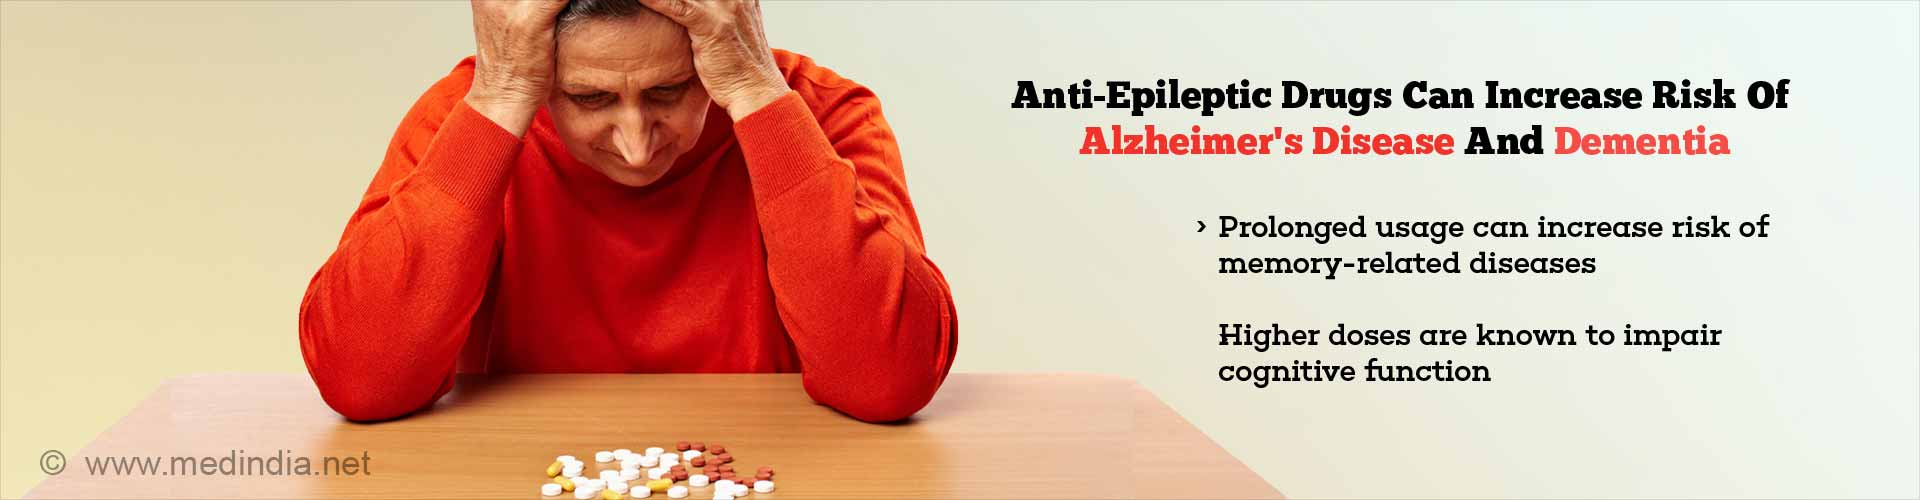 anti-epileptic drugs can increase risk of alzheimer's disease and dementia - prolonged usage can increase risk of memory-related diseases - higher doses are known to impair cognitive function